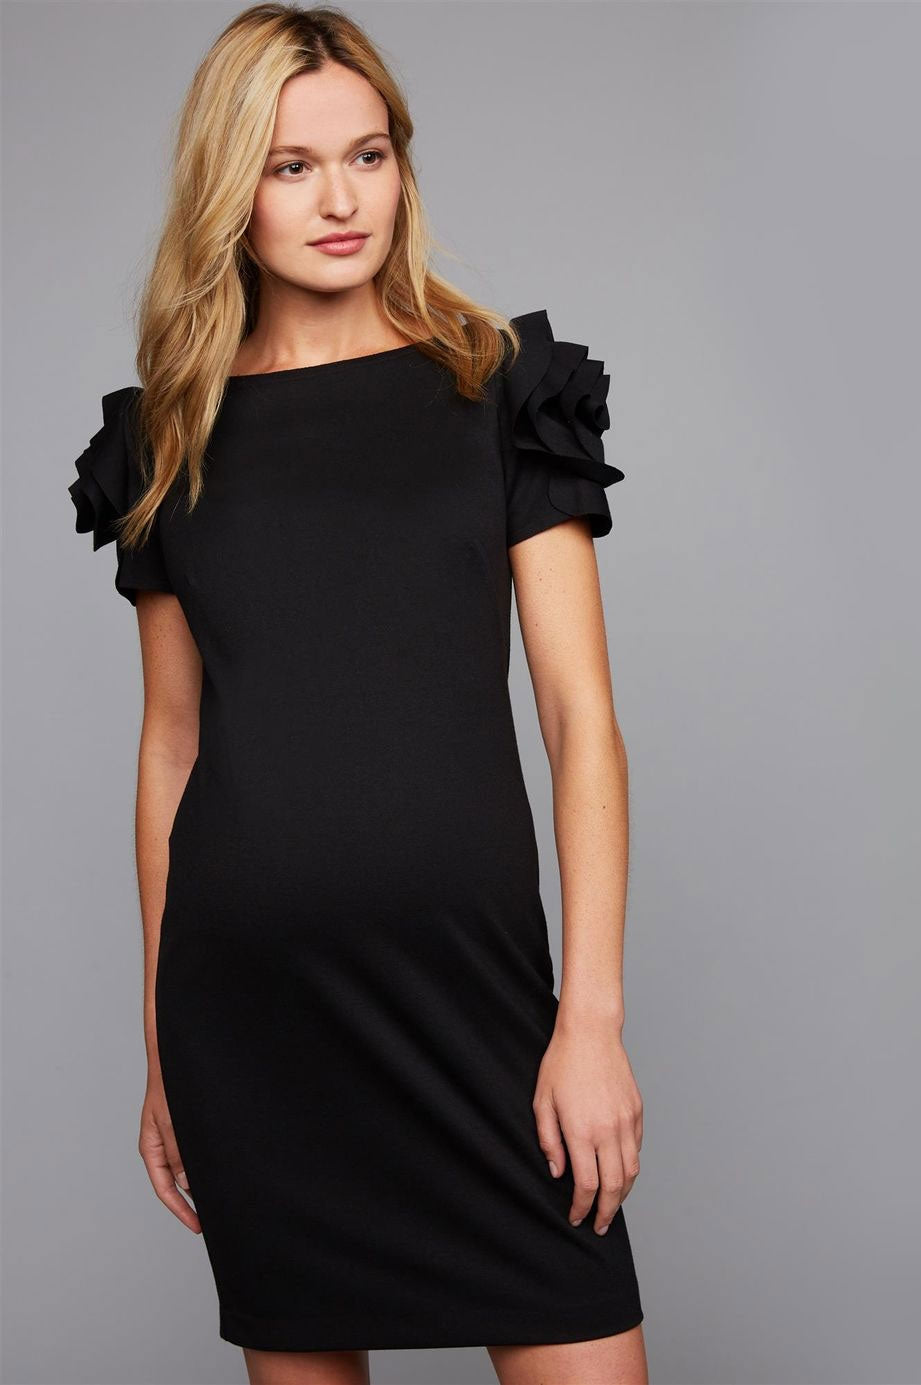 Milano Flower Sleeve Maternity Dress Pietro Brunelli - Seven Women Maternity